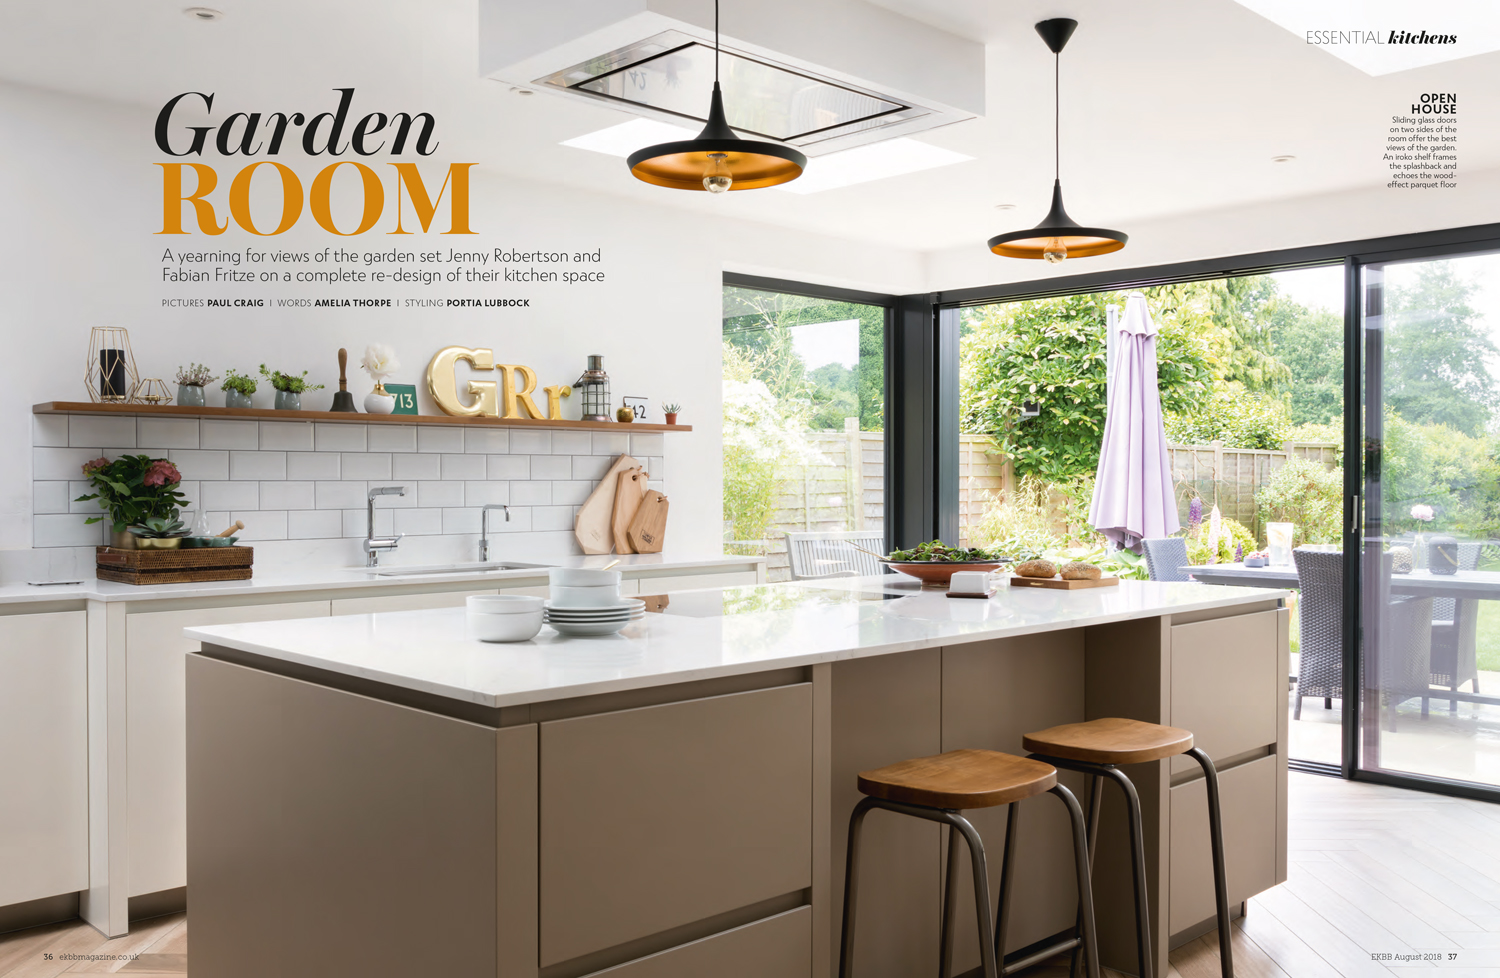 Essential Kitchen Bathroom Bedroom Magazine August 2018 | Paul Craig Interior Photographer